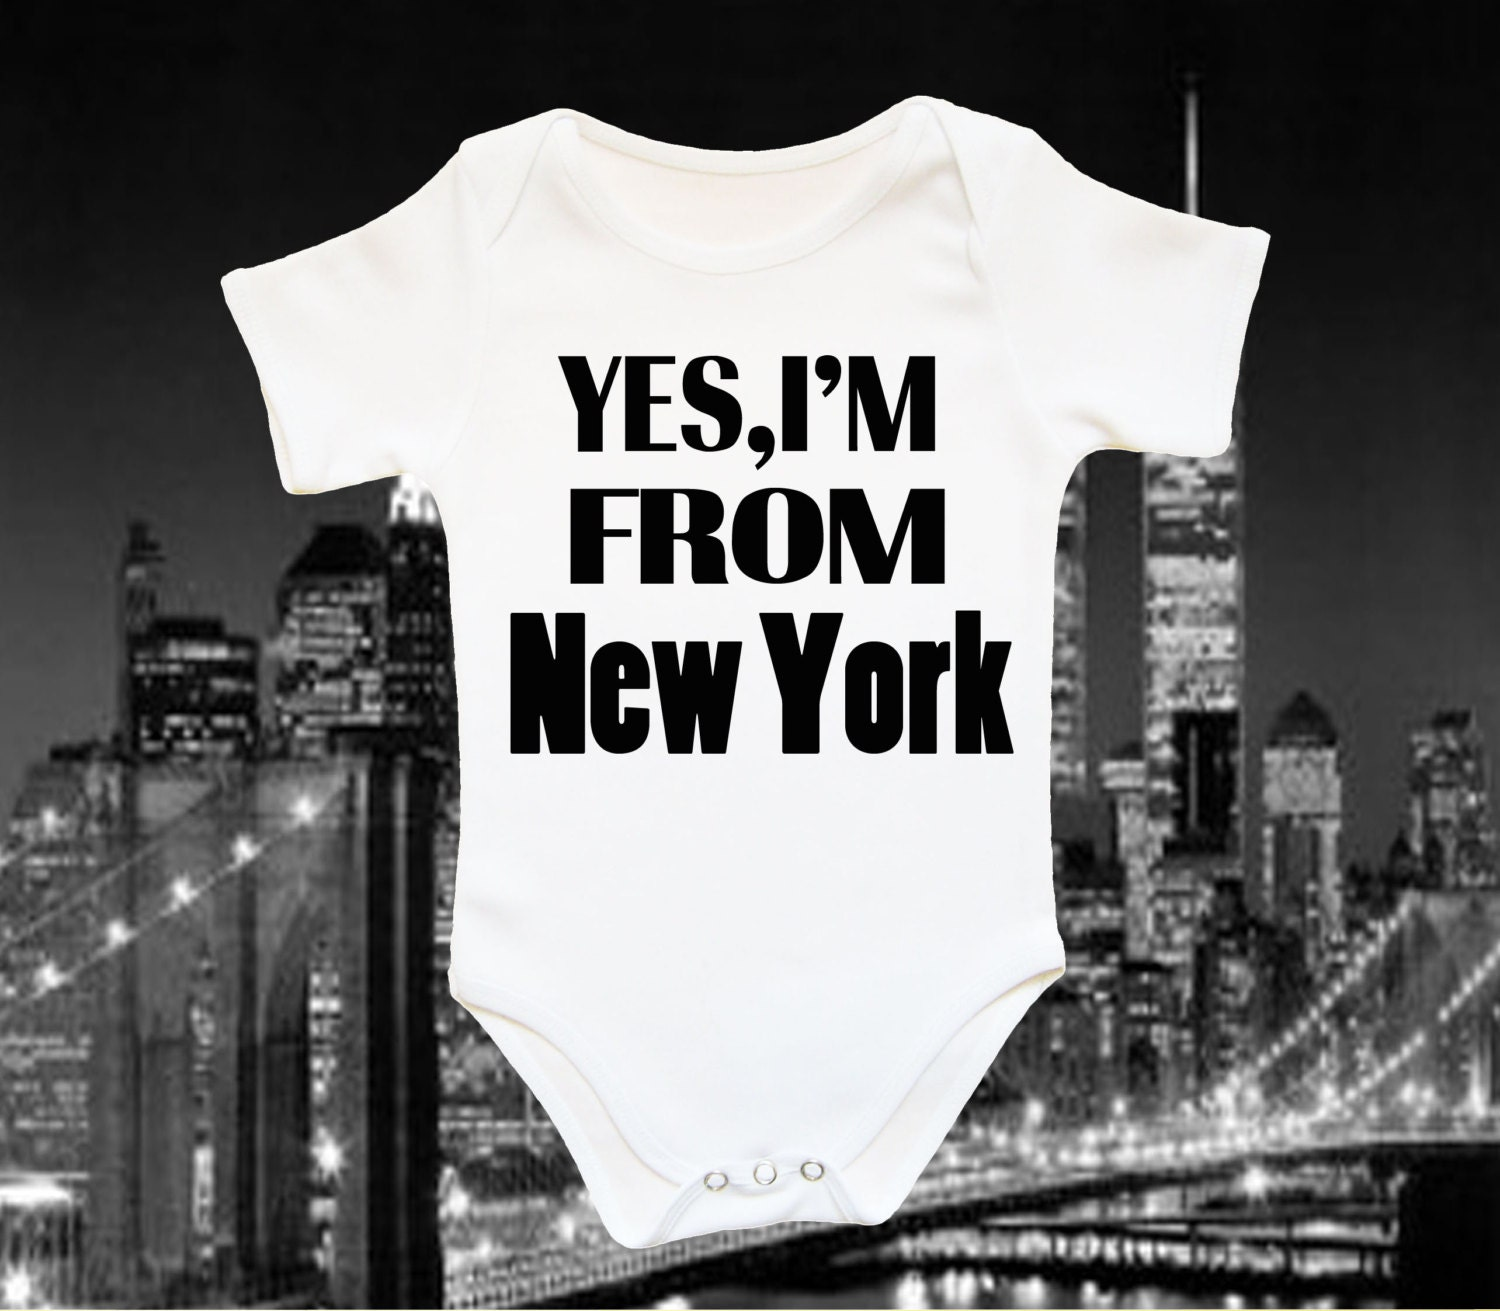 Hip hop baby hip hop baby clothes New York by